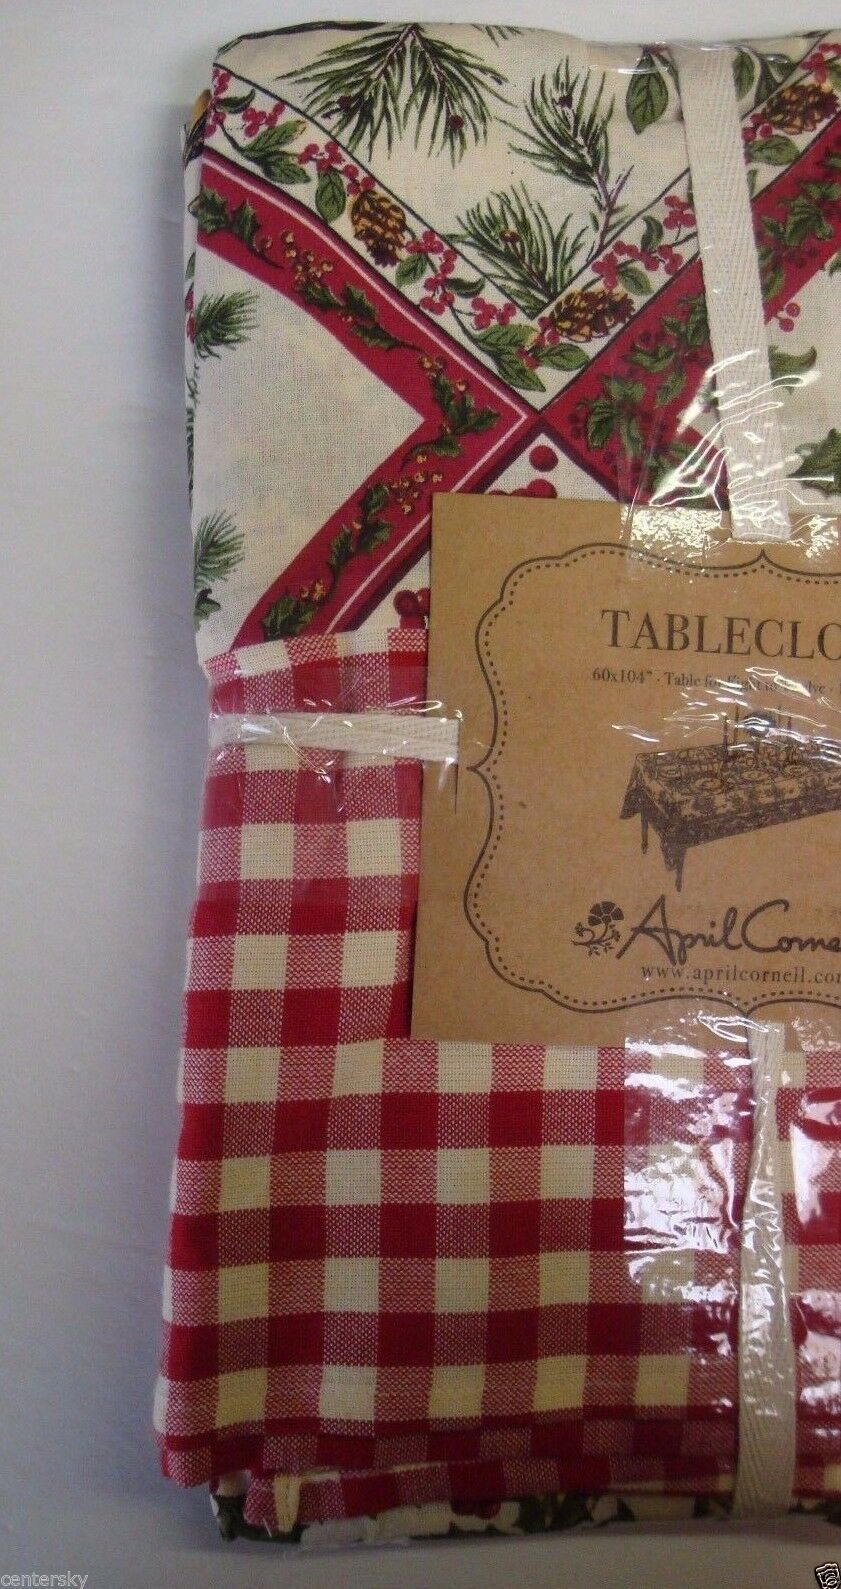 """New April Cornell Tablecloth 60x104"""" Christmas Holly Bird Checkered Boarder"""